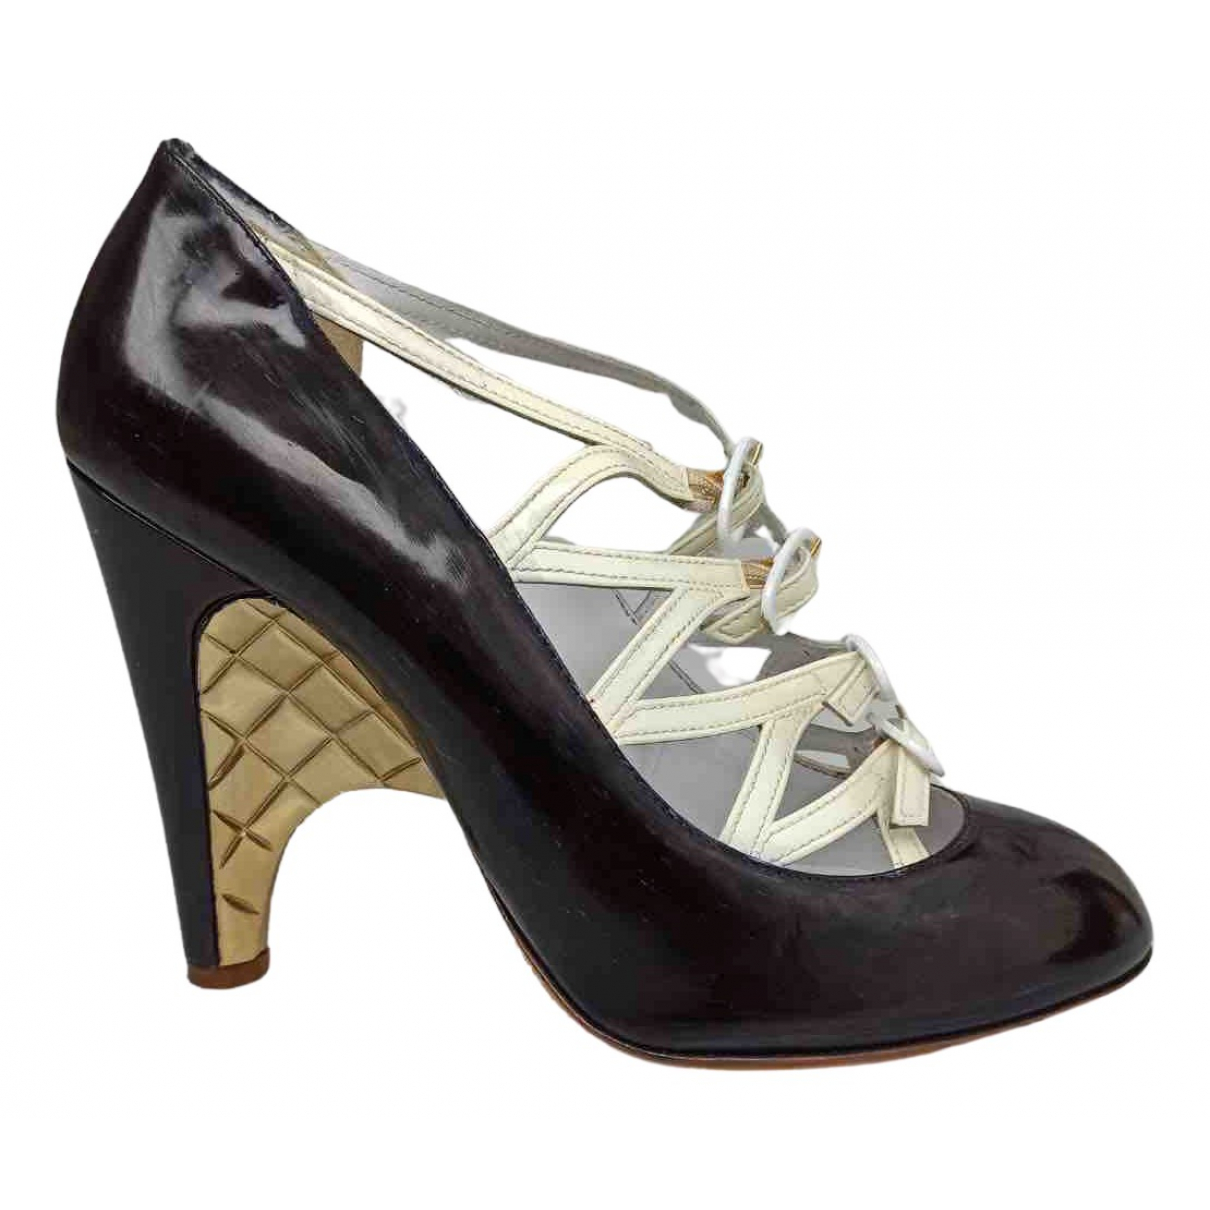 Chanel \N Black Patent leather Heels for Women 39 EU